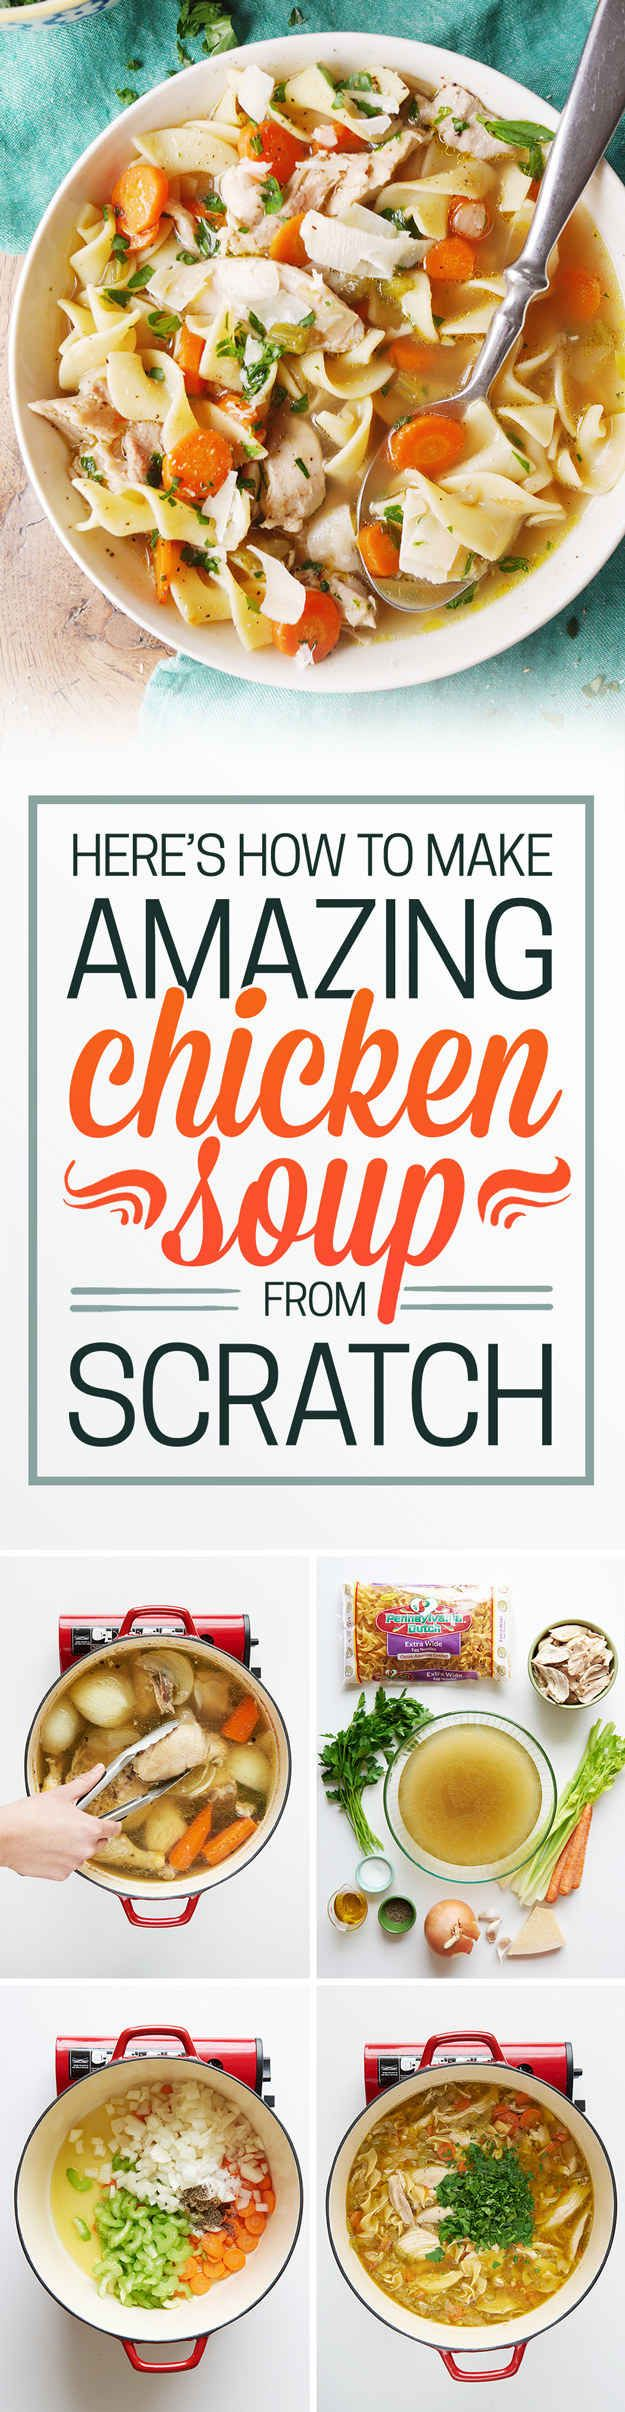 Have you ever wondered why your mom's homemade chicken soup tasted so delicious? I hate to break it to ya, but love wasn't the ~only~ reason it tasted so good. It was FROM SCRATCH.